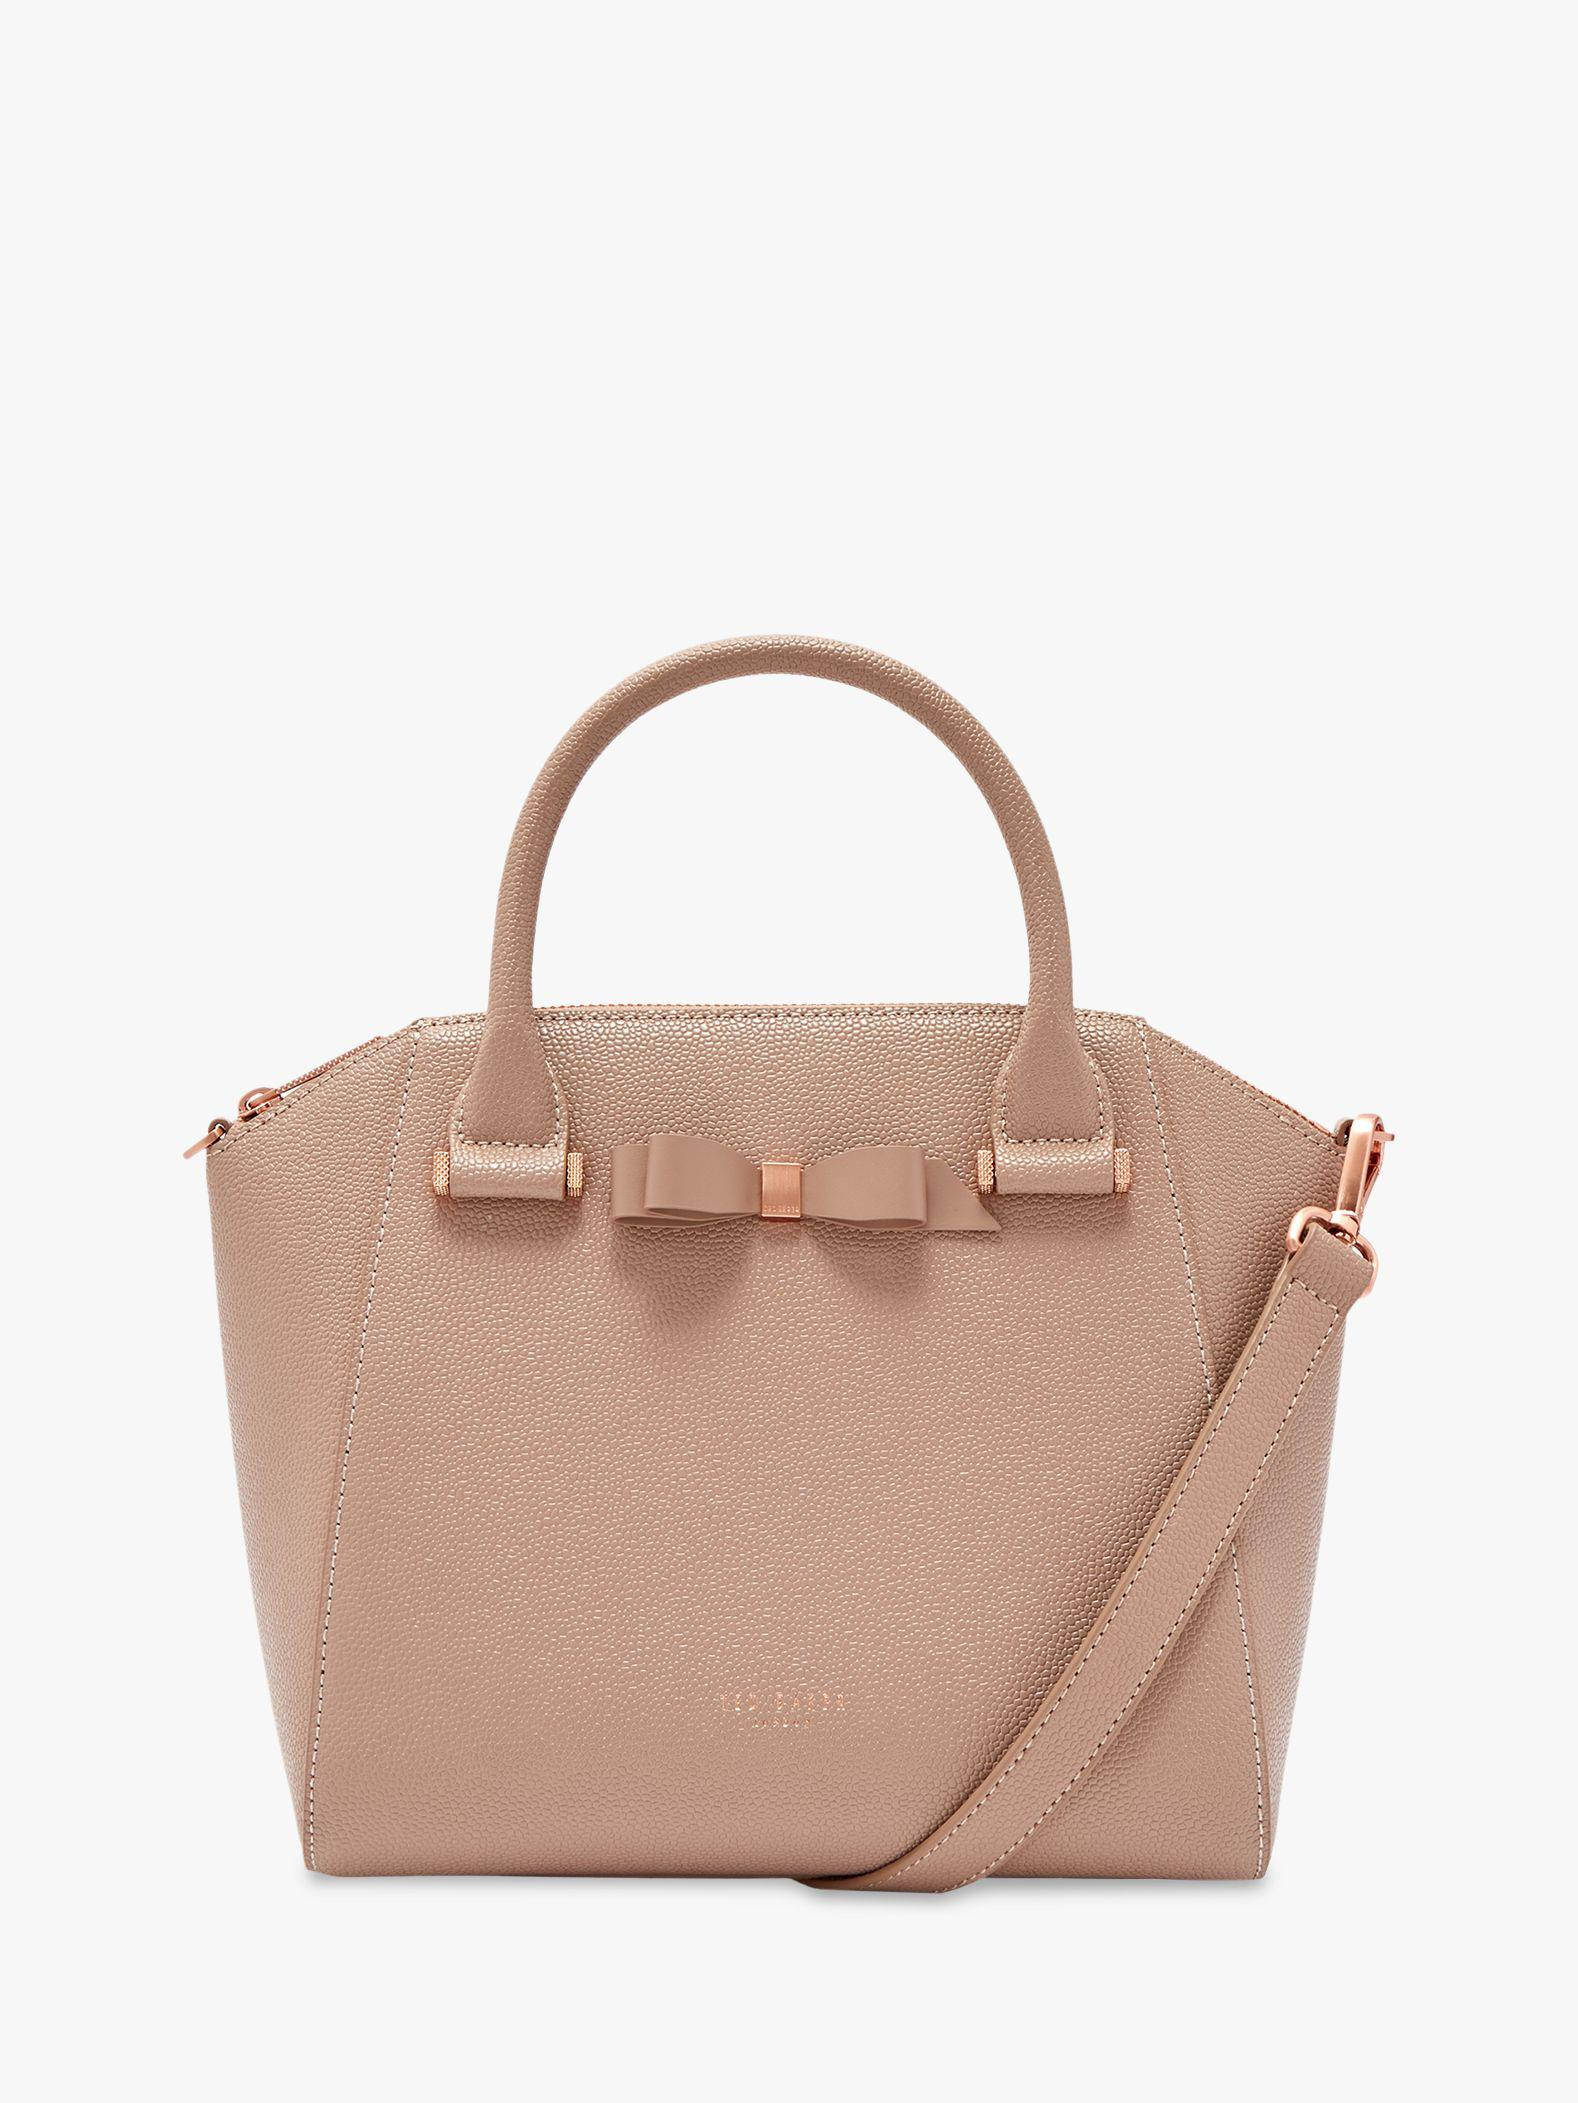 289a8ab0aea Ted Baker Janne Bow Leather Tote Bag in Brown - Lyst